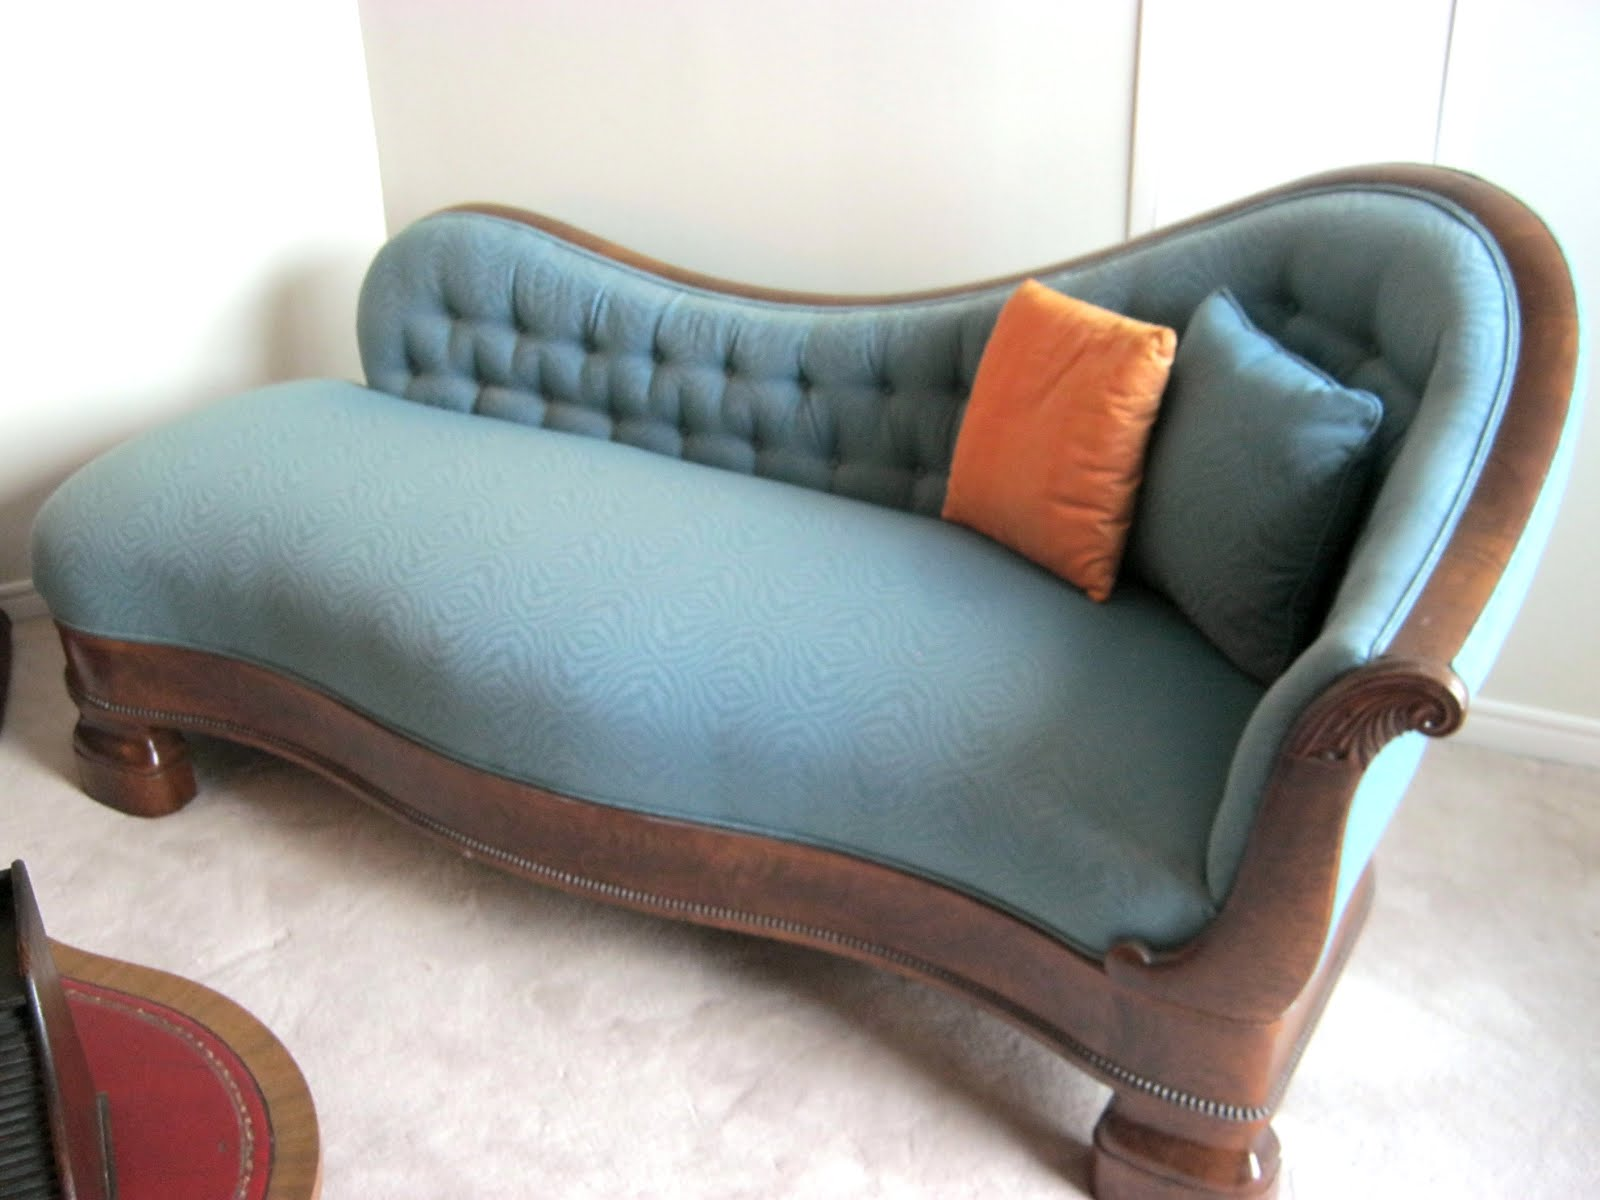 Funk & Gruven A Z 1890 s FAINTING COUCH WITH WALNUT FRAME